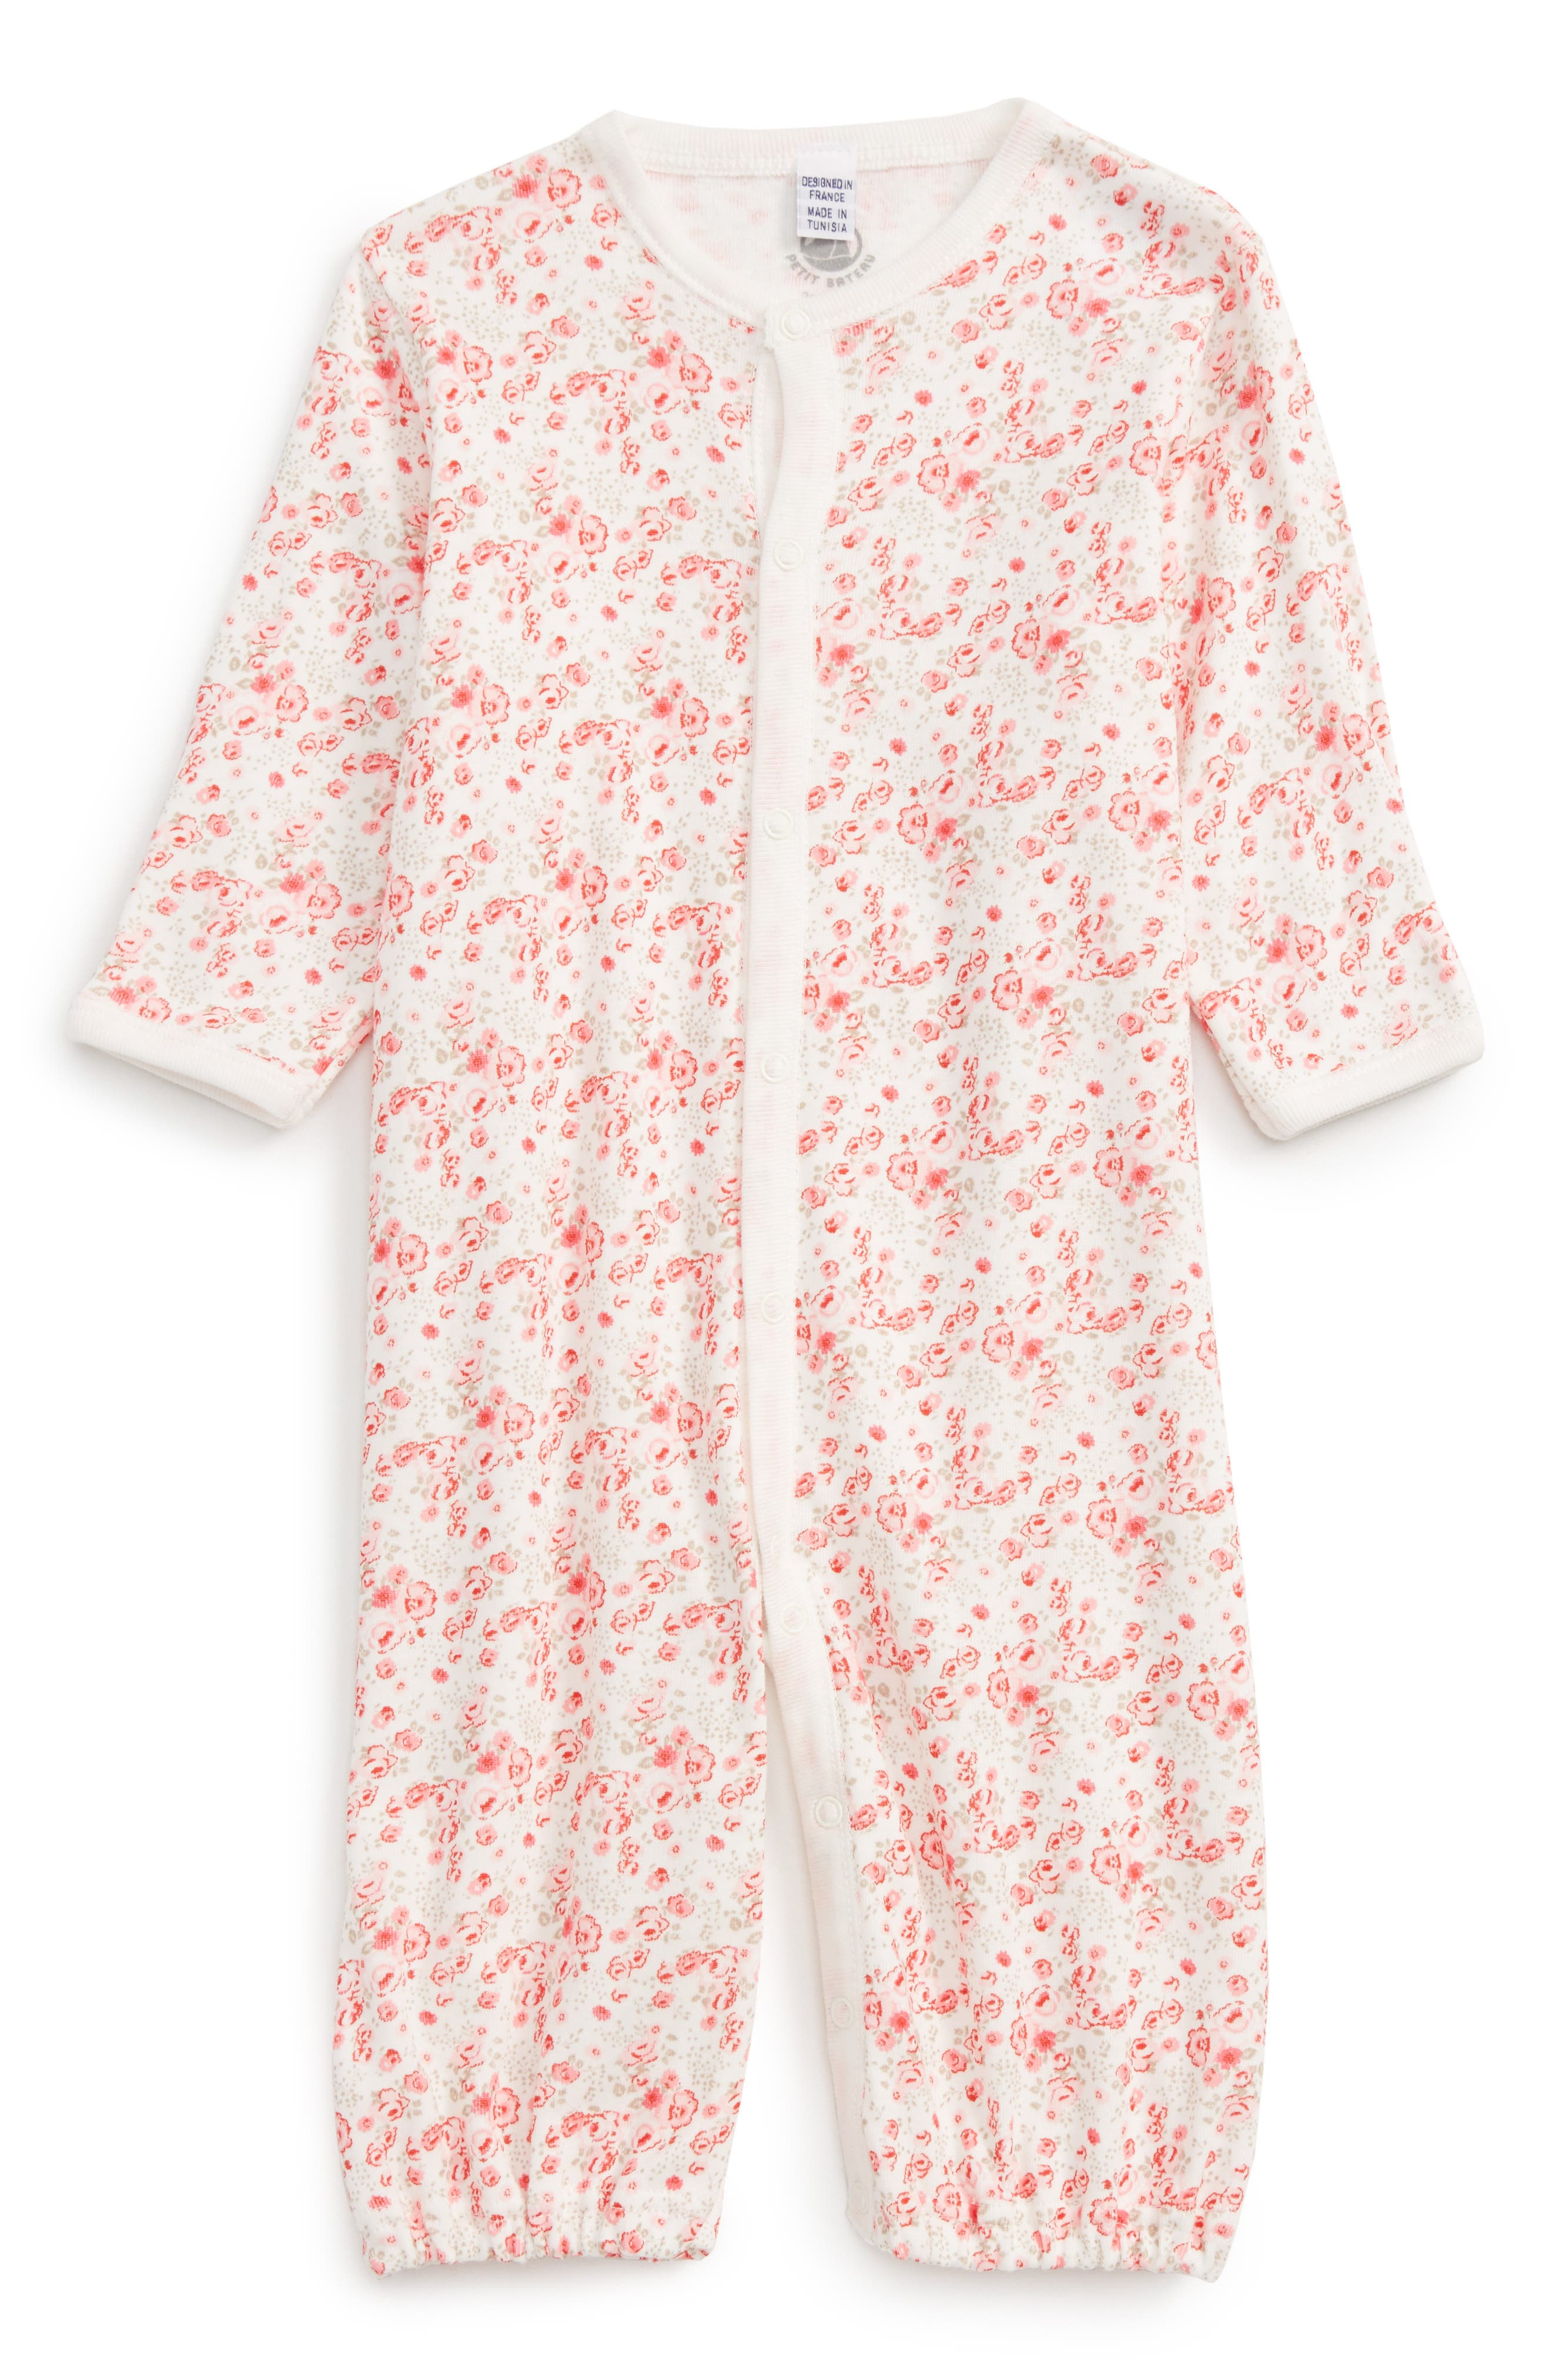 Alternate Image 1 Selected - Petit Bateau Convertible Gown (Baby Girls)